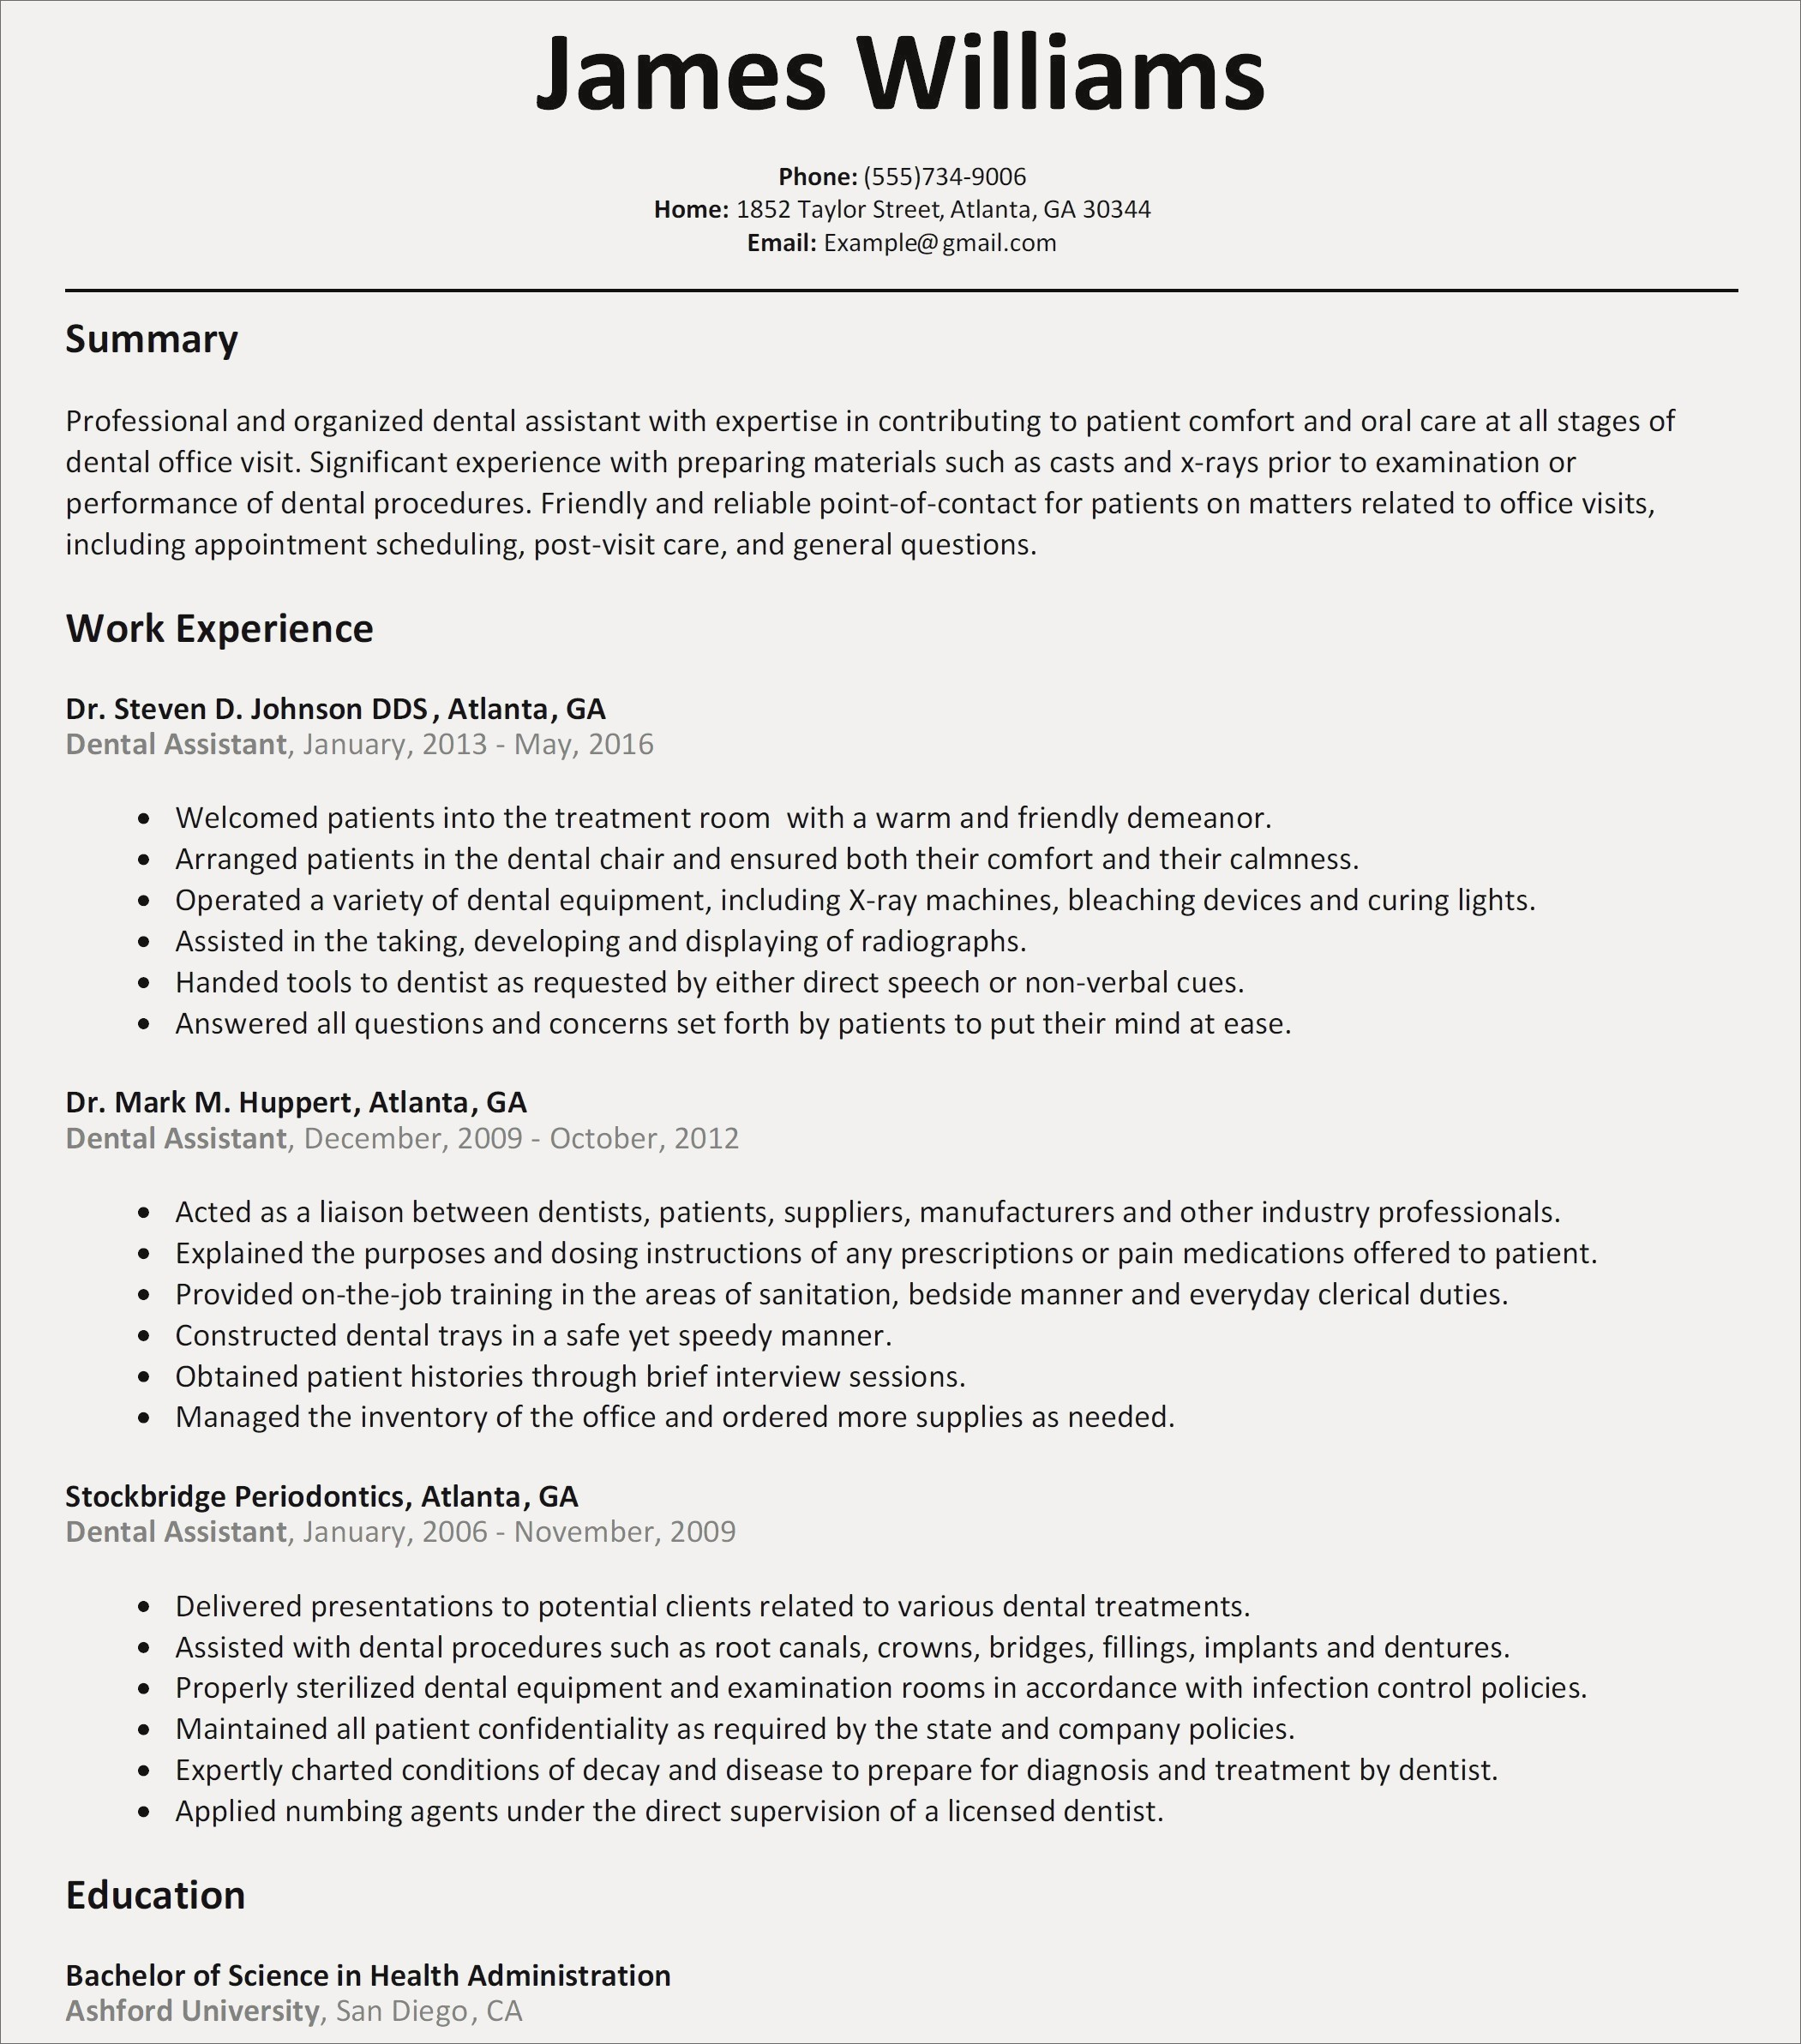 Professional Summary for Resume - Resume Professional Summary Examples New Sample Resumes